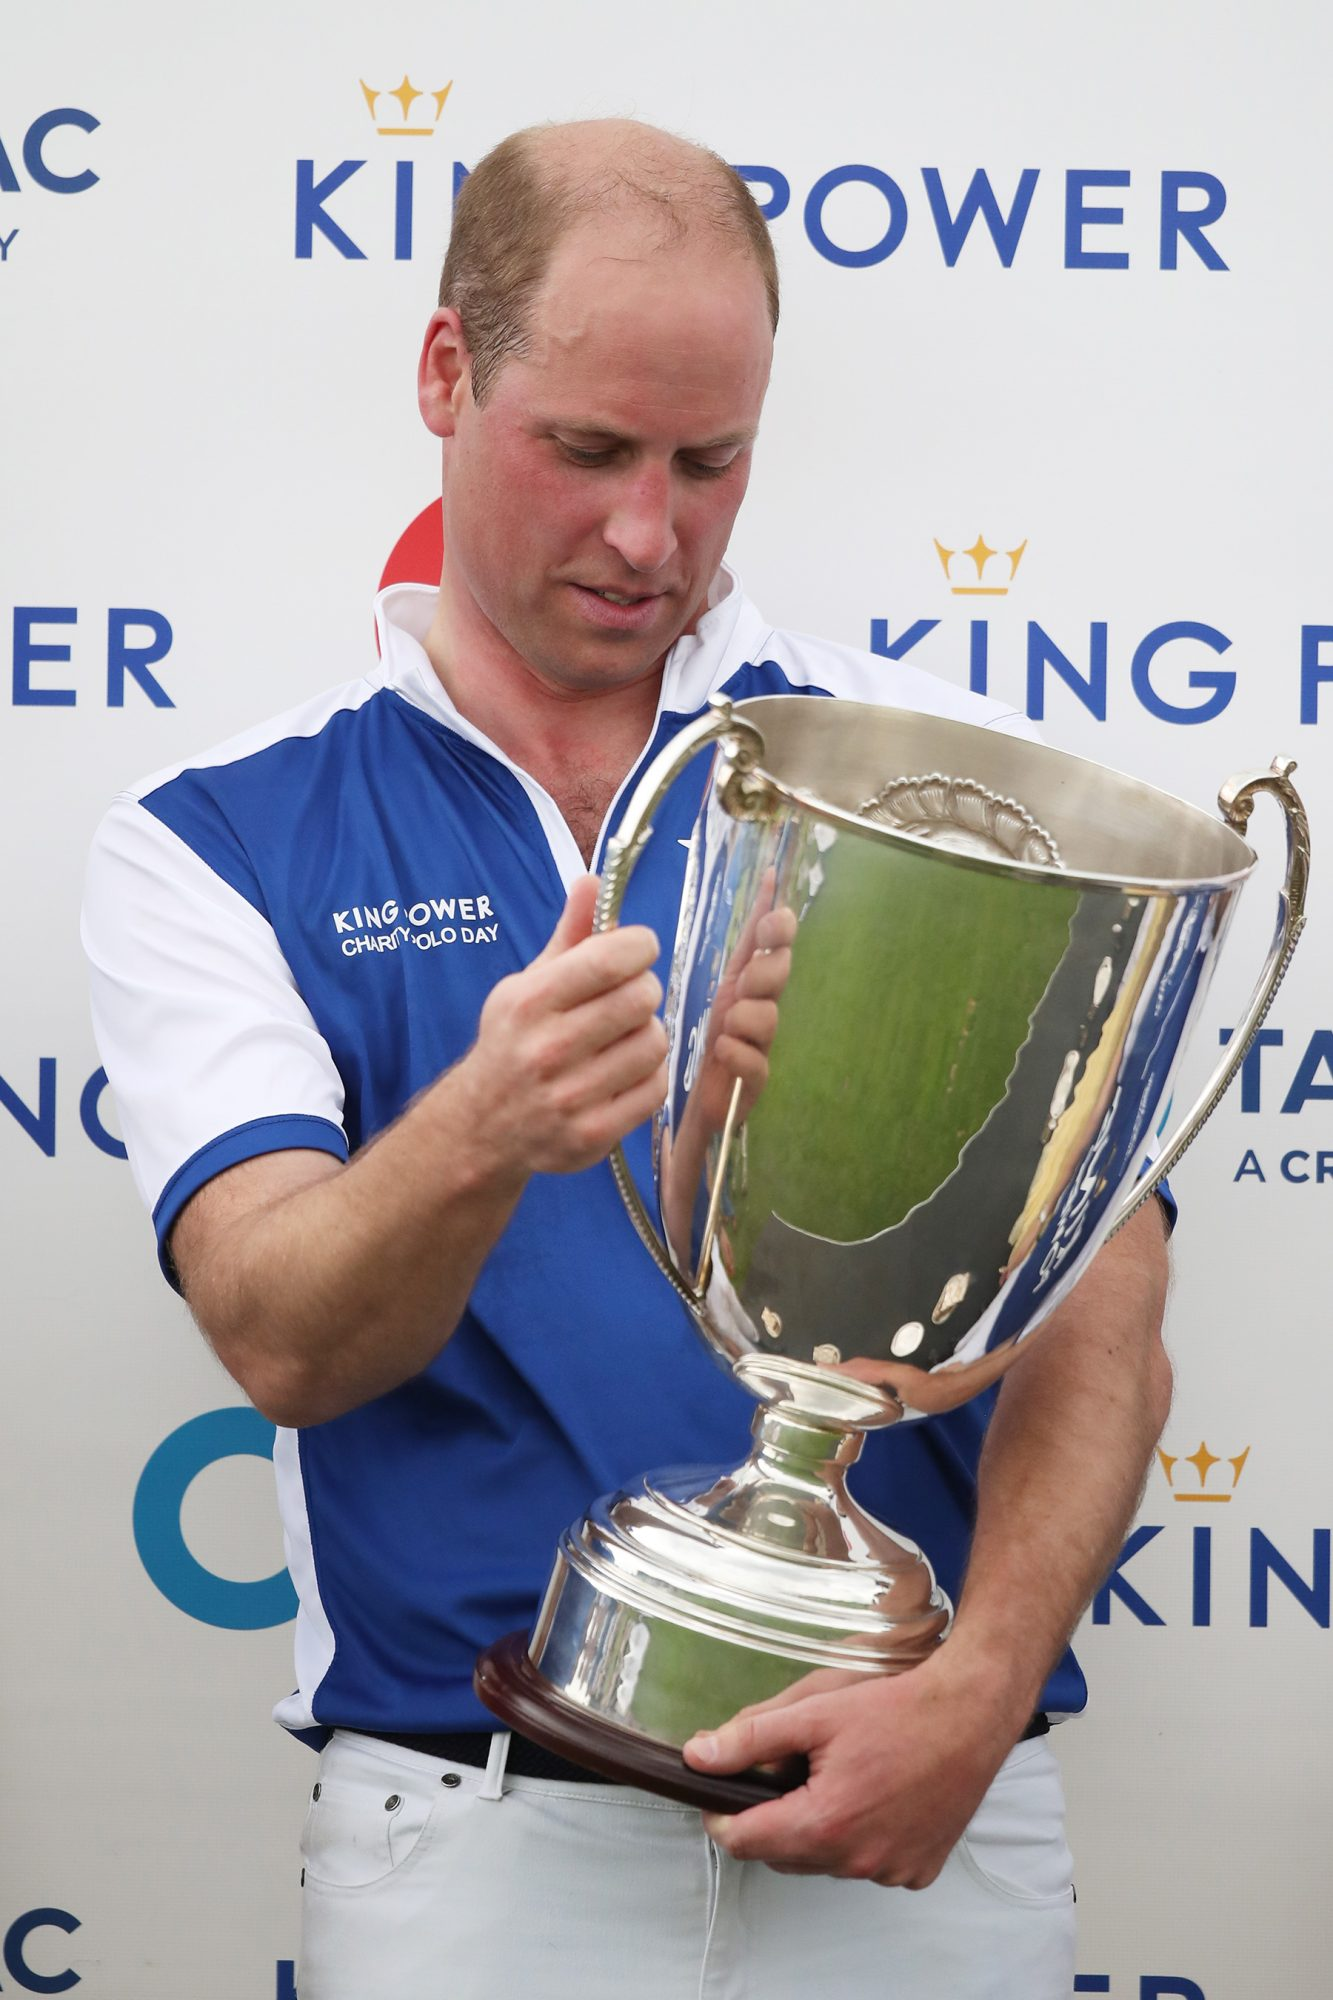 The Duke of Cambridge after winning the Khun Vichai Srivaddhanaprabha Memorial Polo Trophy during the King Power Royal Charity Polo Day at Billingbear Polo Club, Wokingham, Berkshire. (Photo by Andrew Matthews/PA Images via Getty Images)